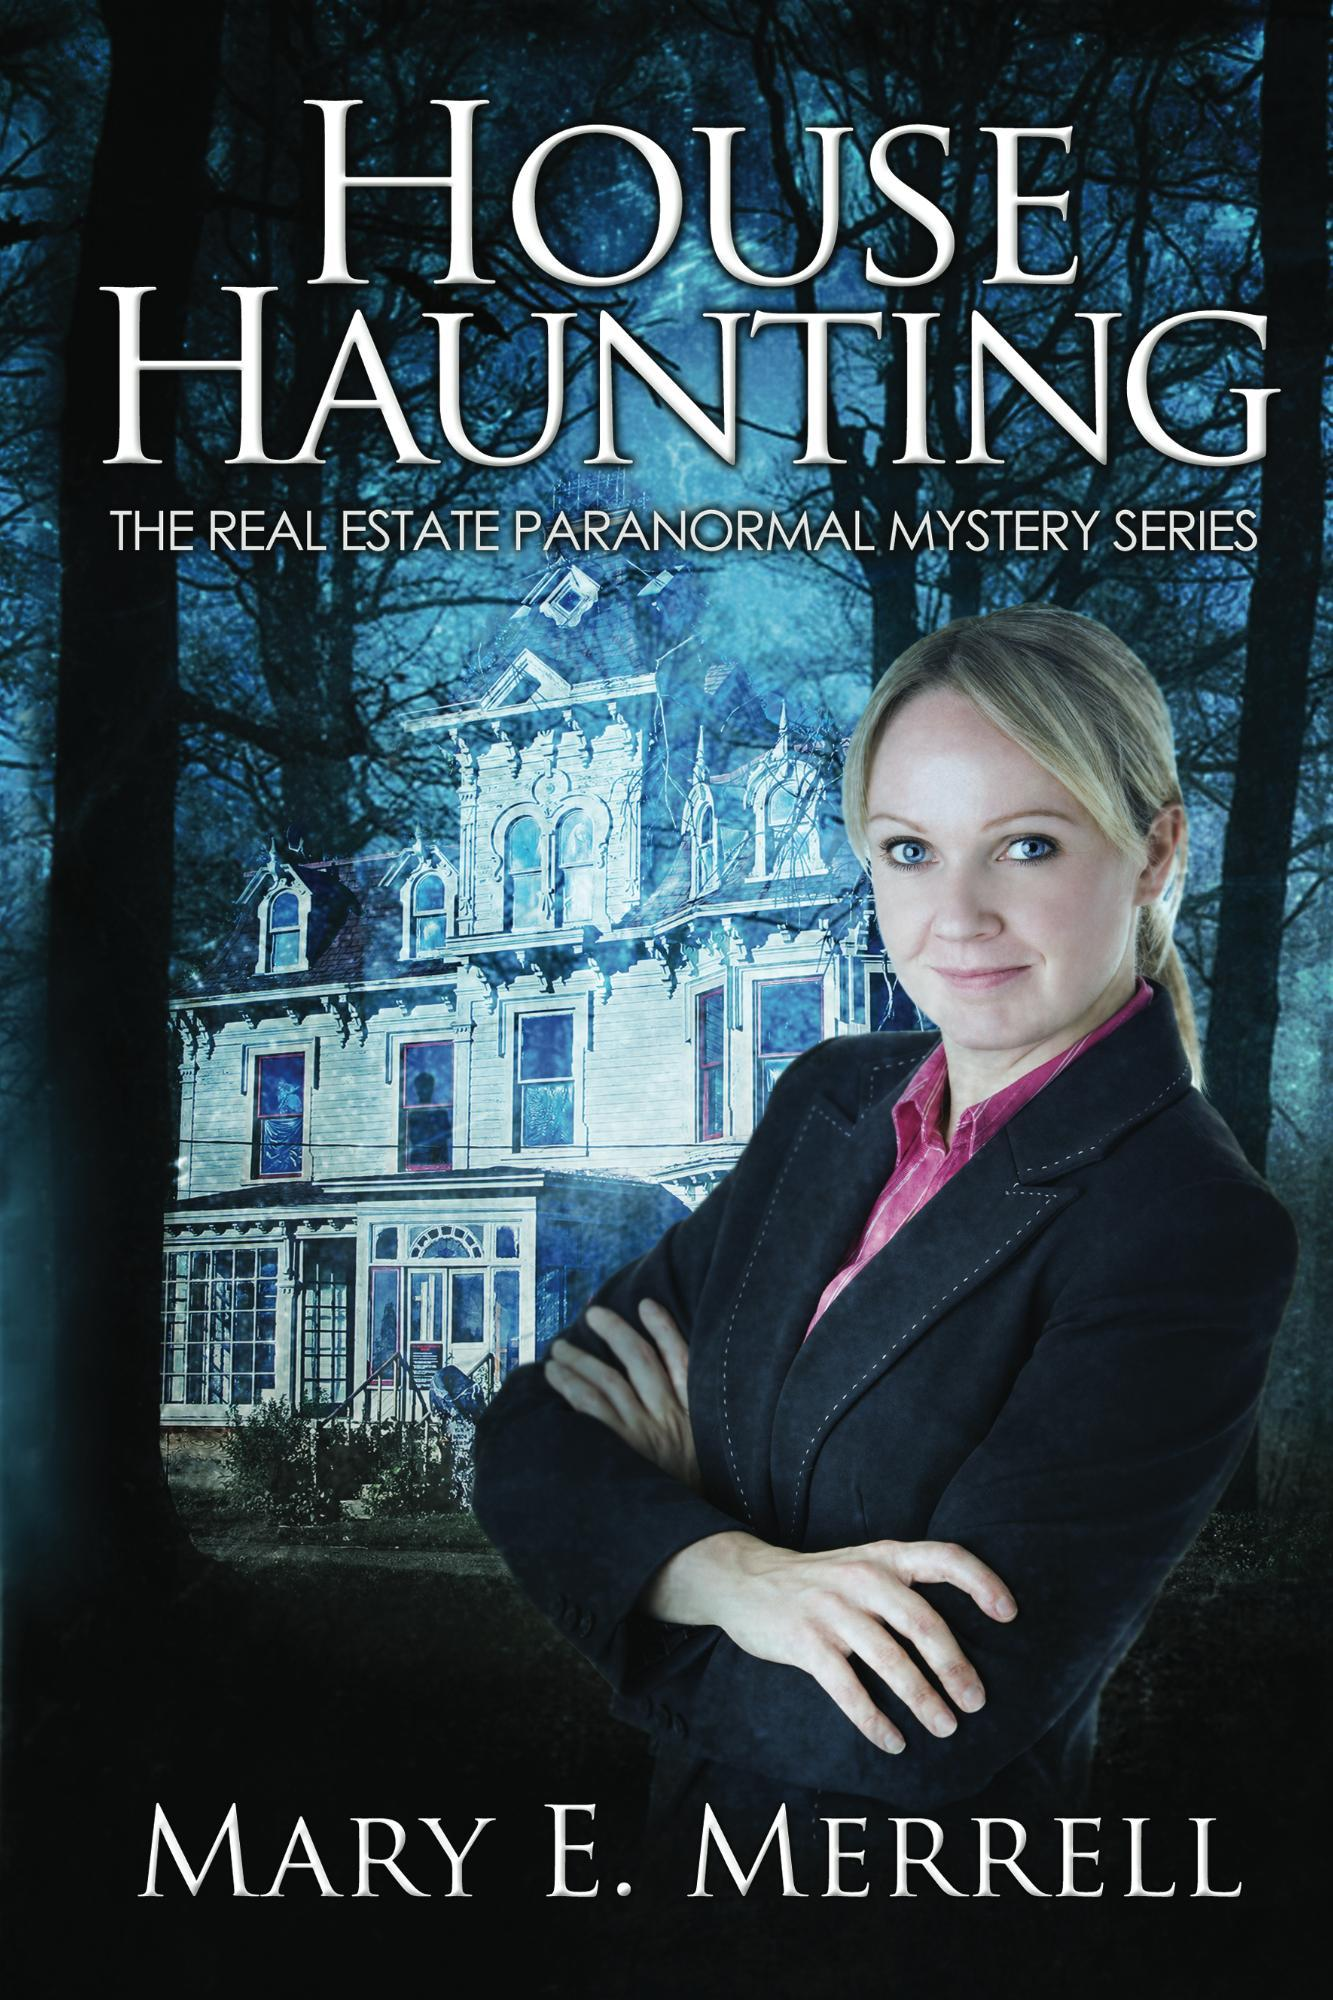 The Real Estate Paranormal Mystery Series Marketing Plan - image 2 - student project